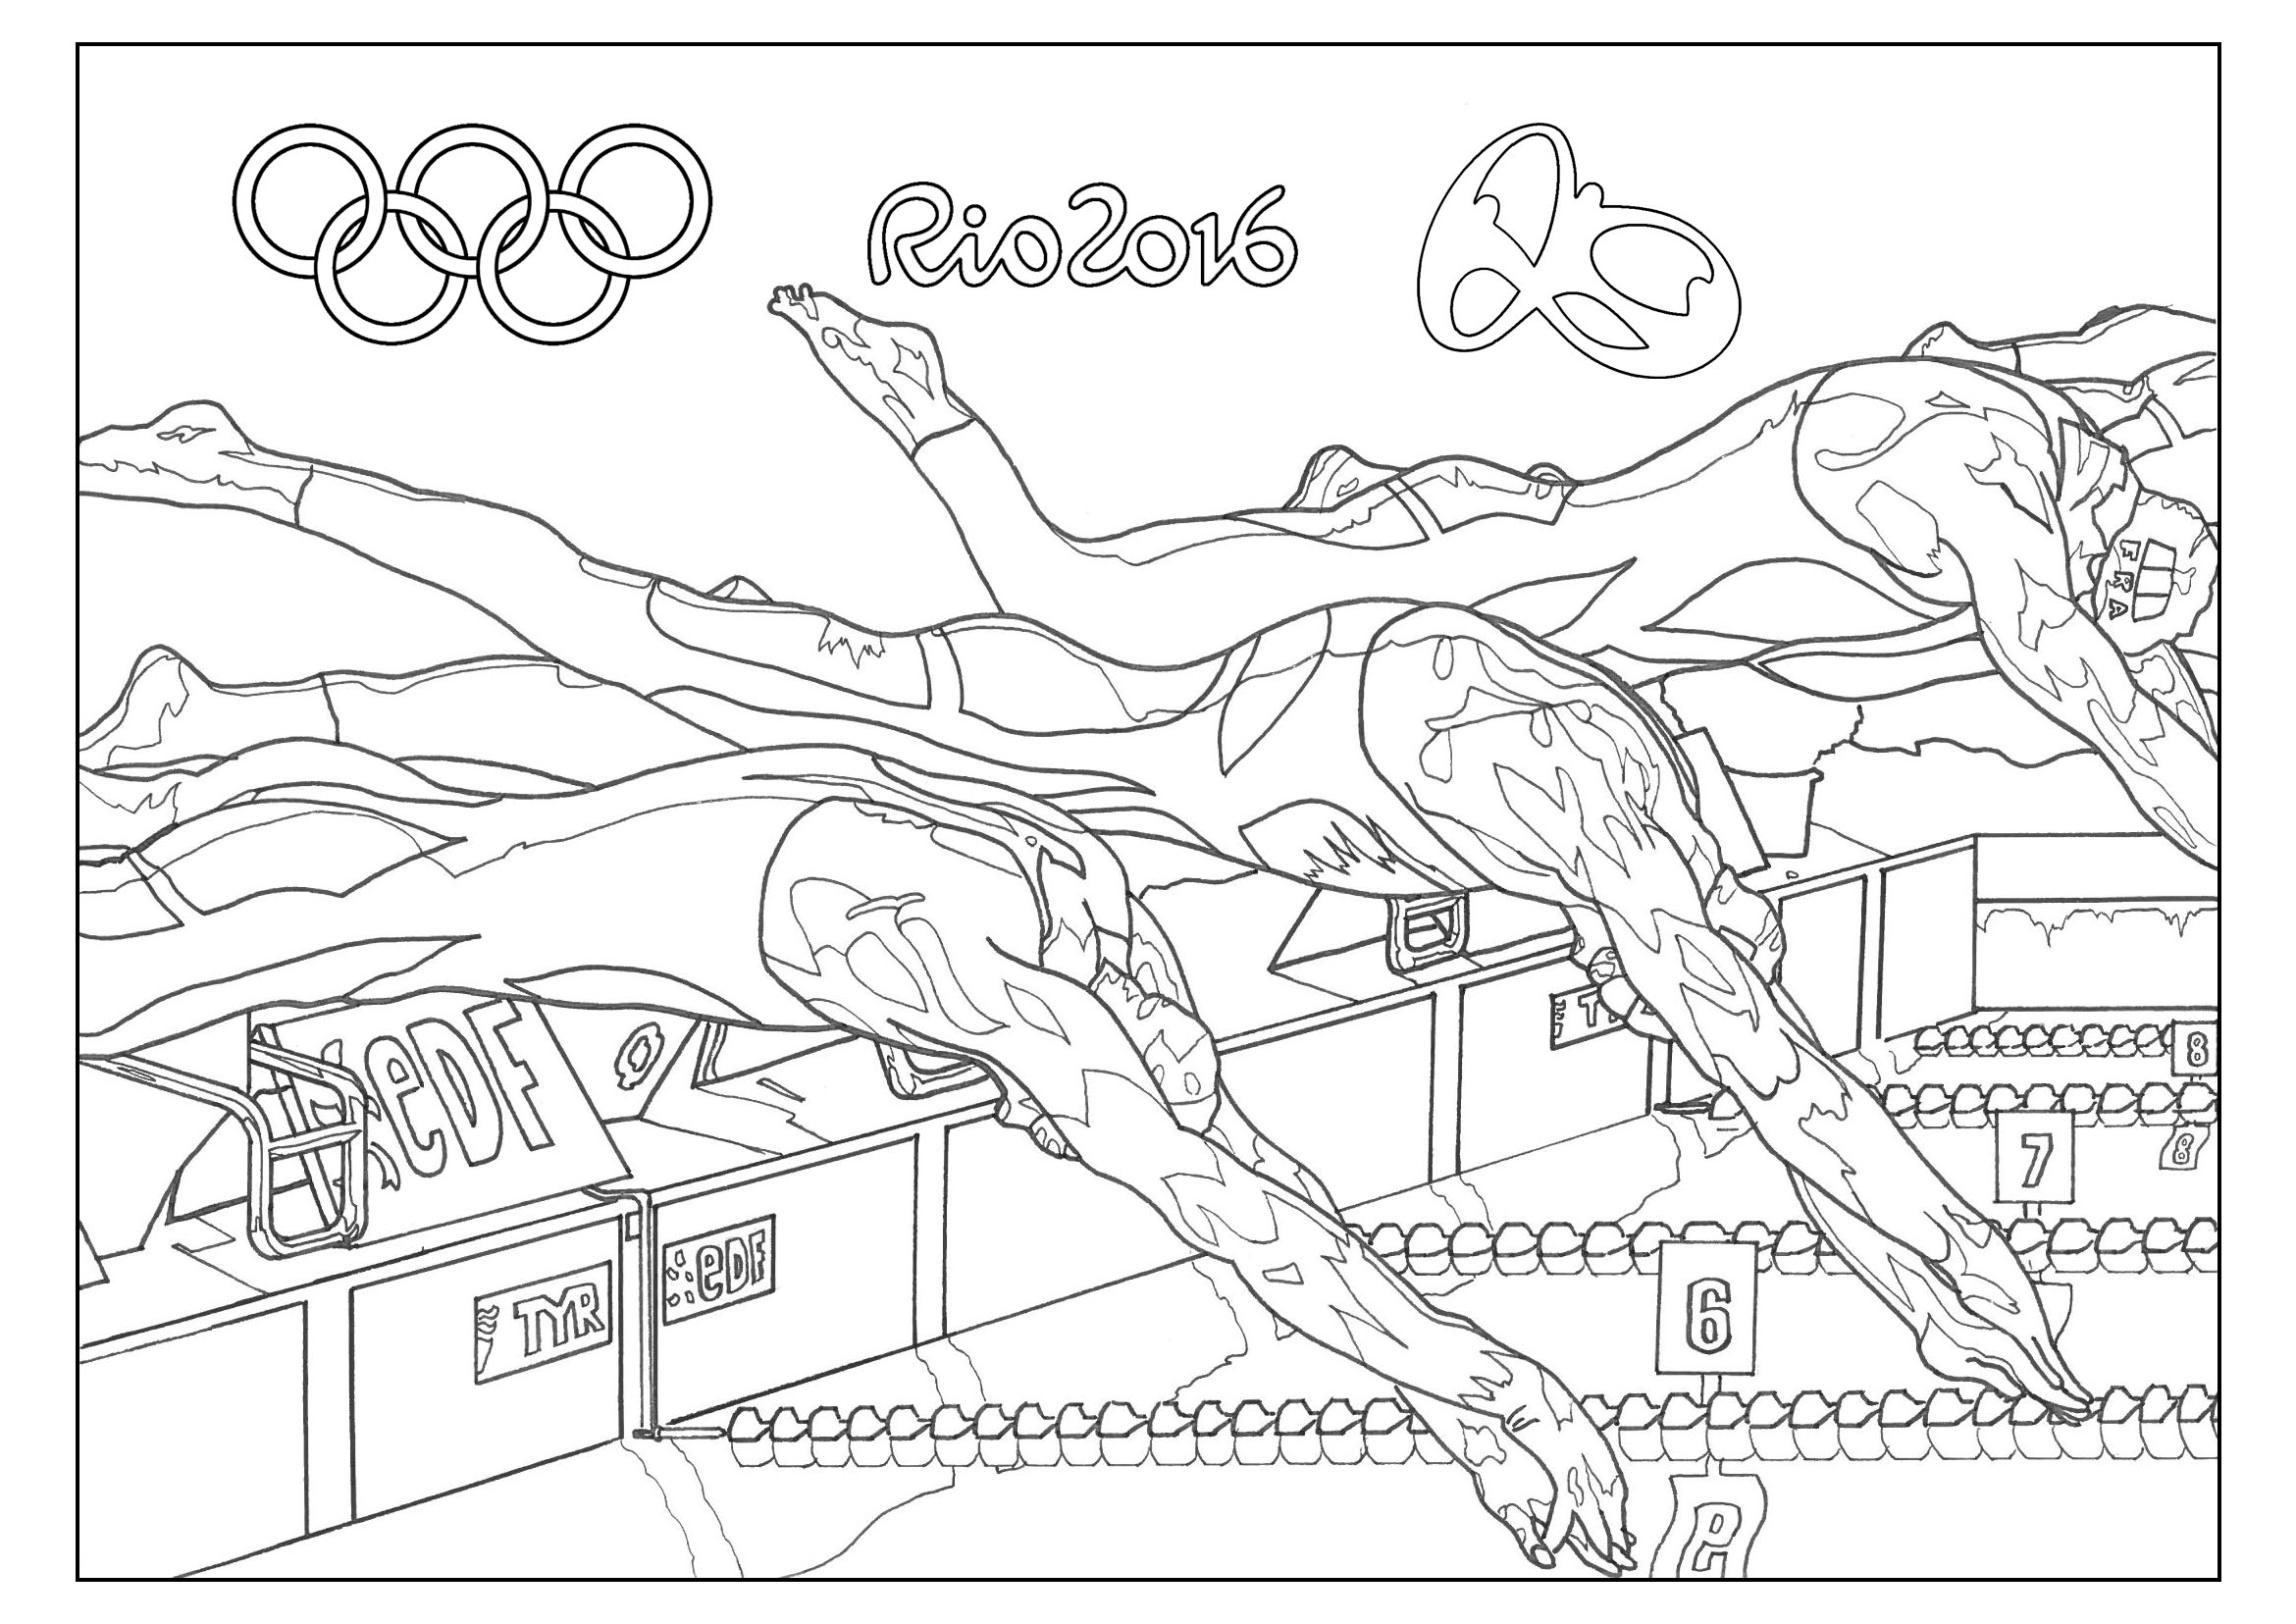 Swim Team Coloring Pages 6107 821—1061 – Fun Time to Print Of Special Olympics Coloring Pages Inspirational Olympic torch Coloring Download